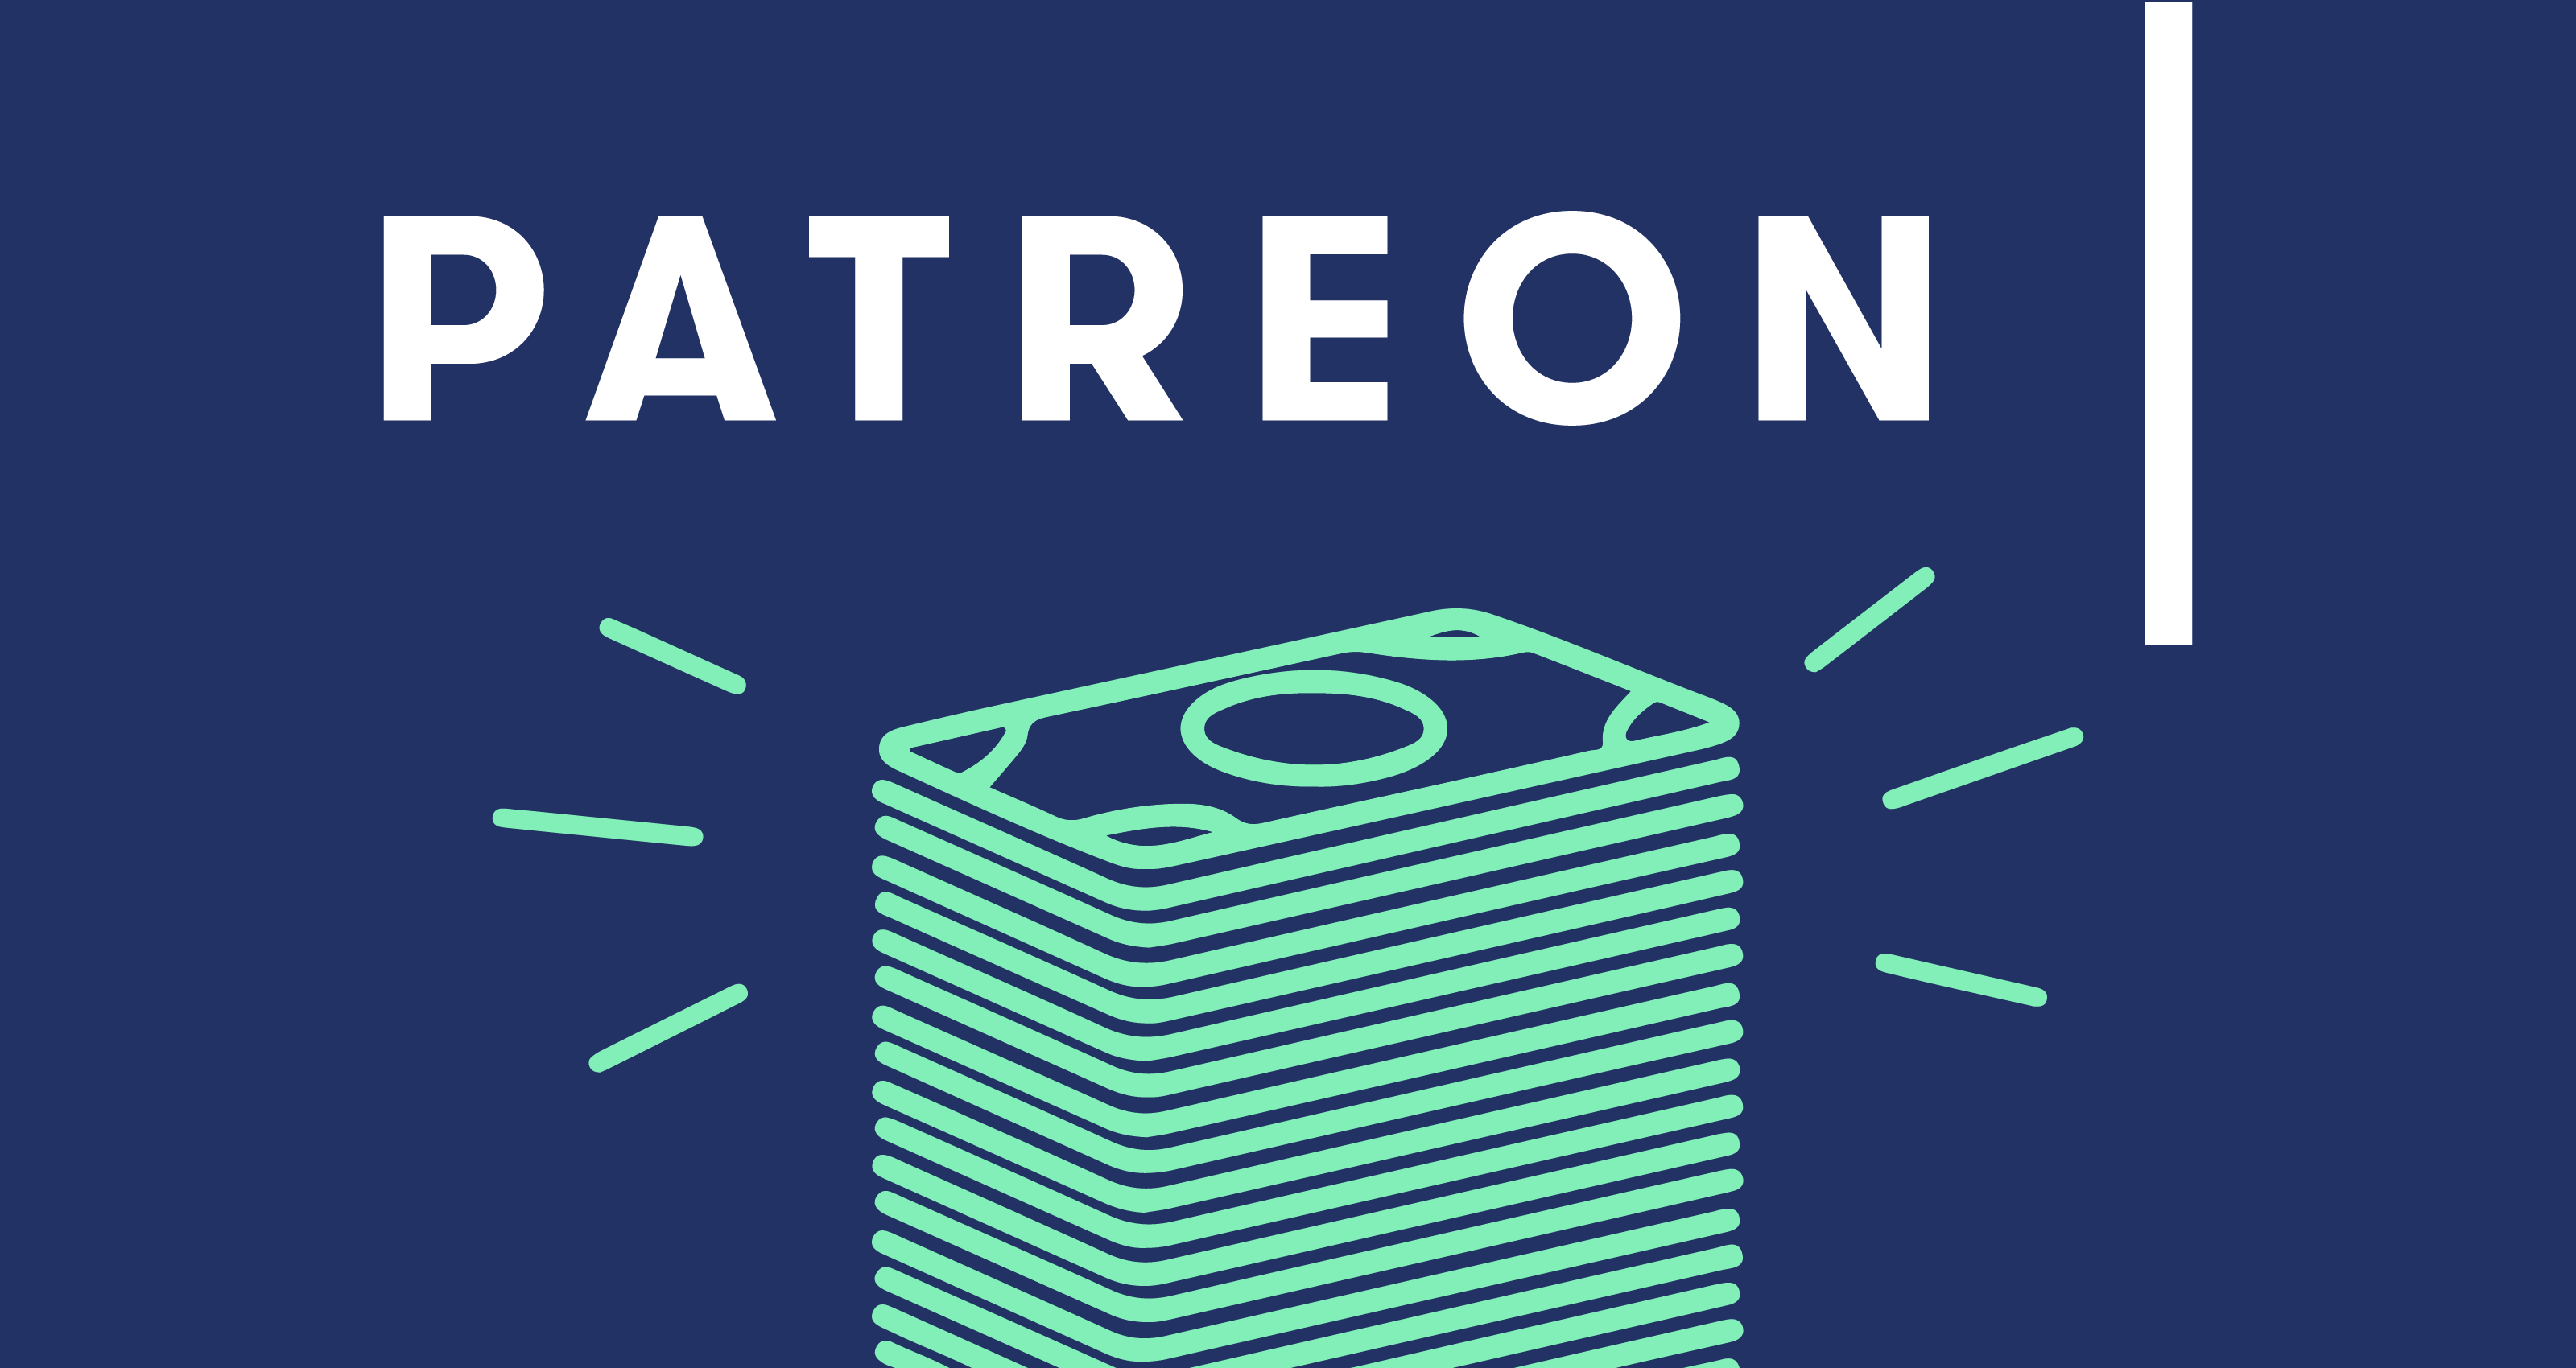 Patreon lays off 13 percent of its staff despite pandemic-induced growth